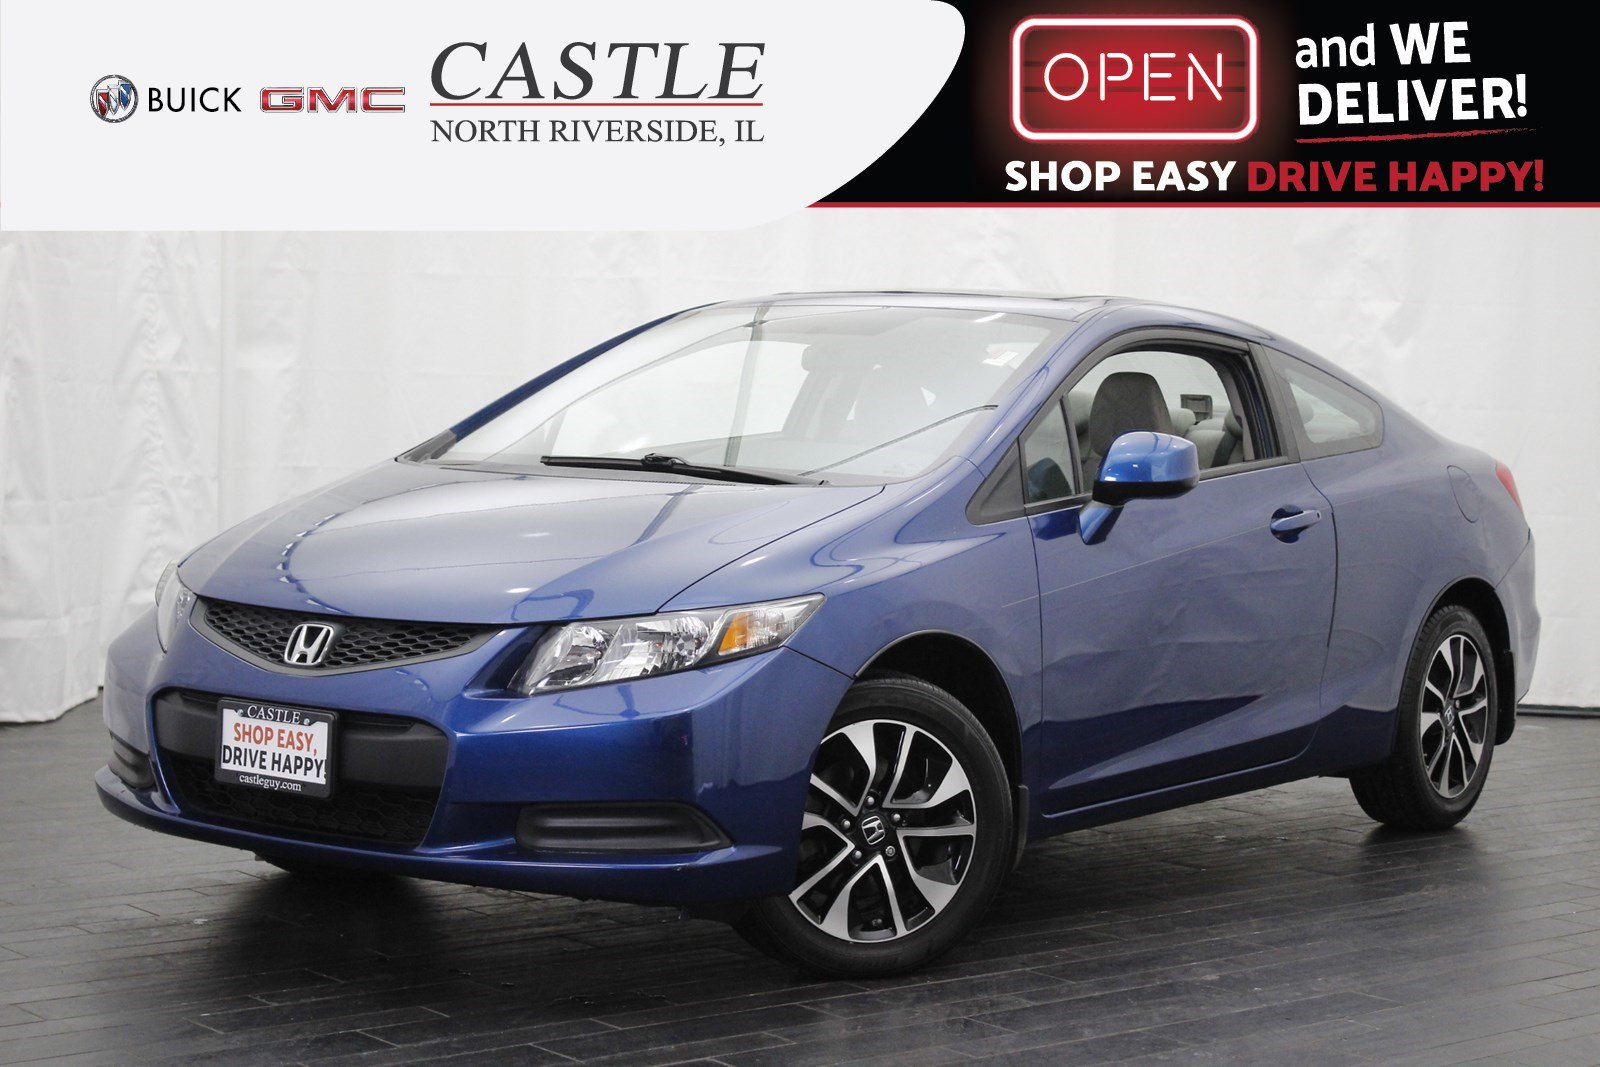 Pre-Owned 2013 Honda Civic Cpe EX